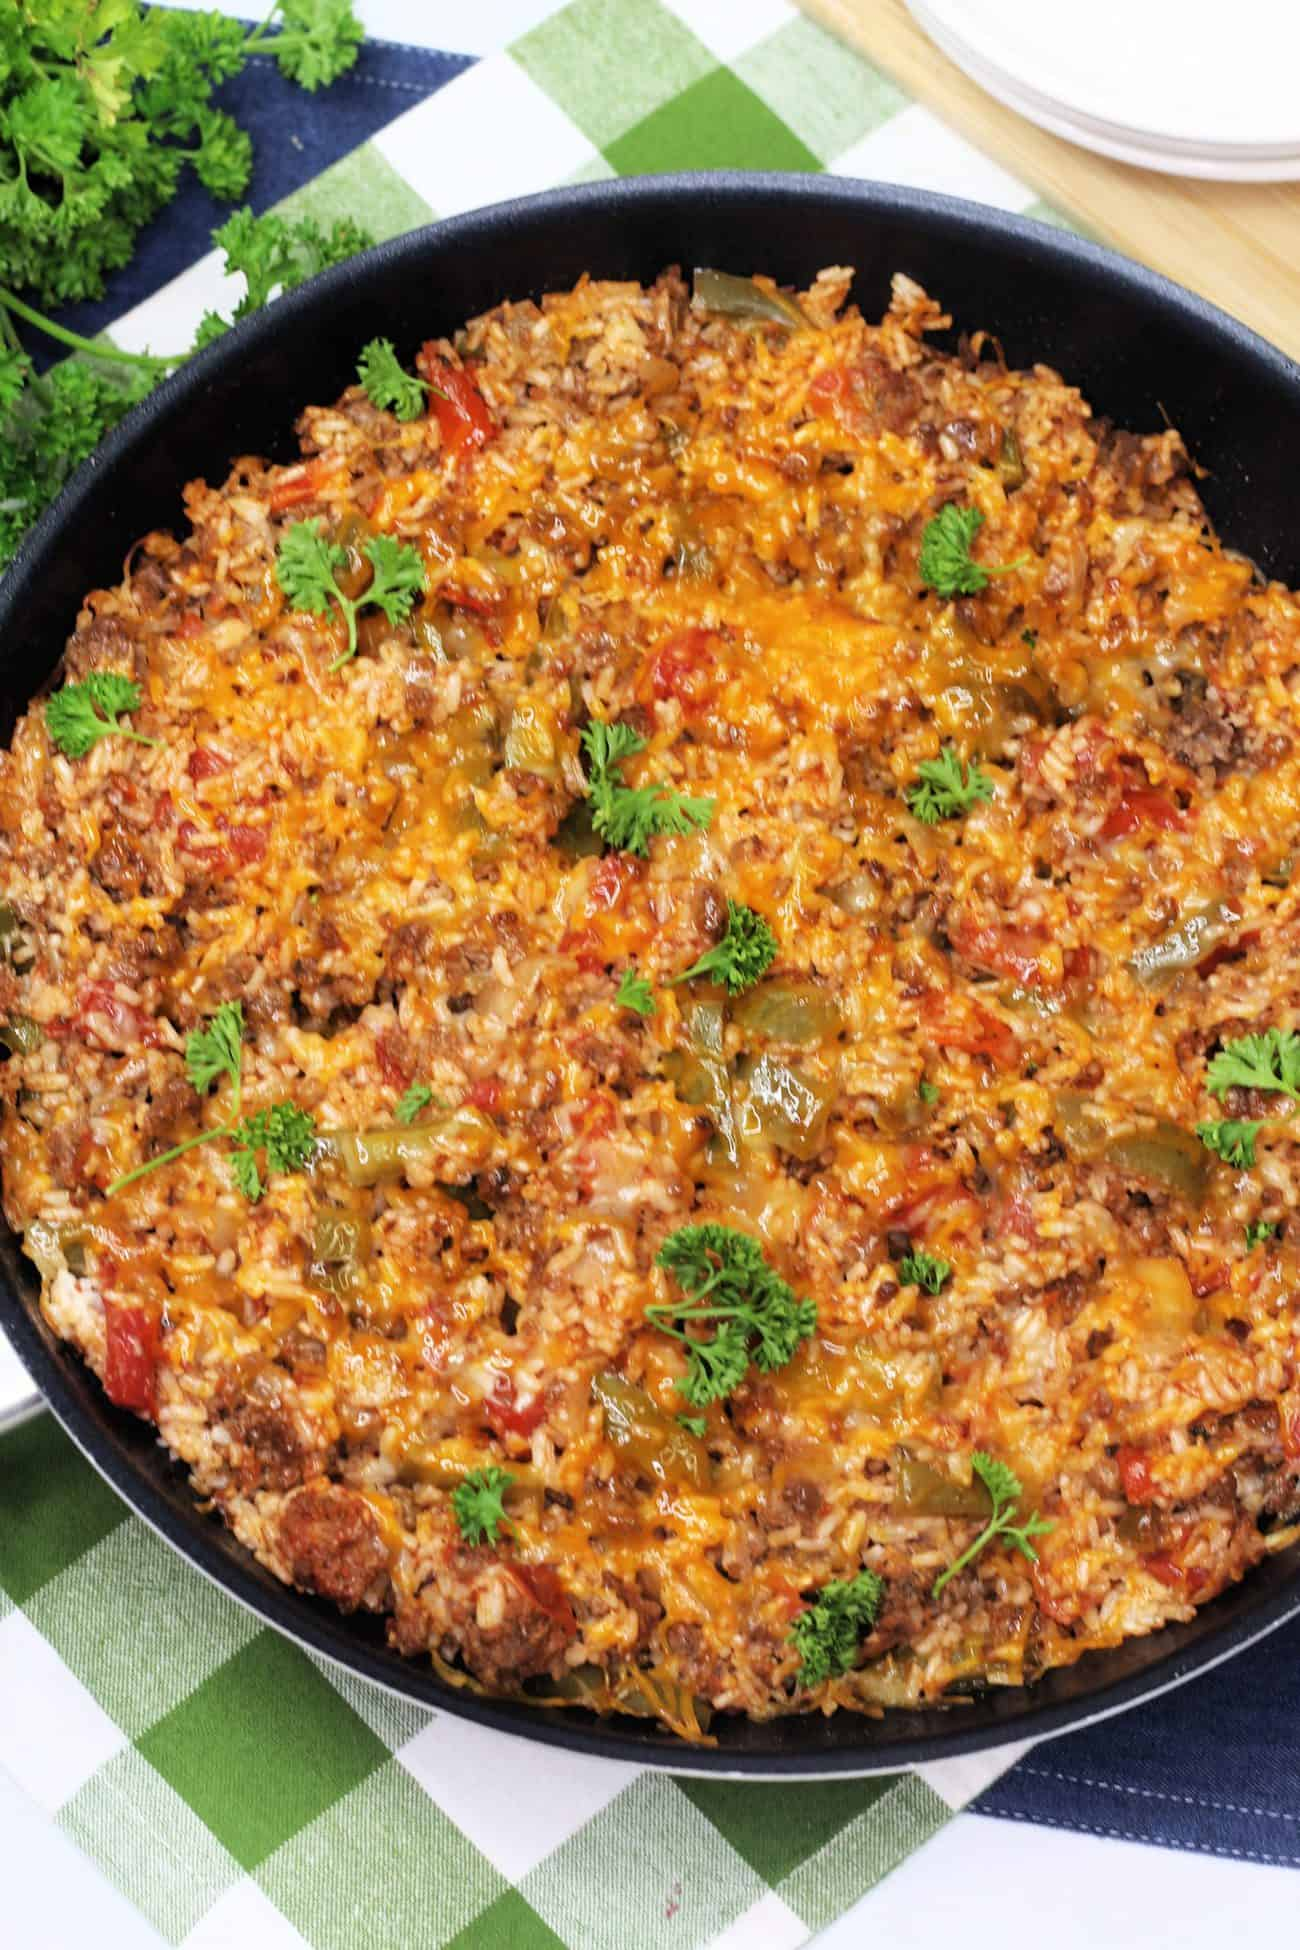 Ground Beef Stuffed Pepper Skillet